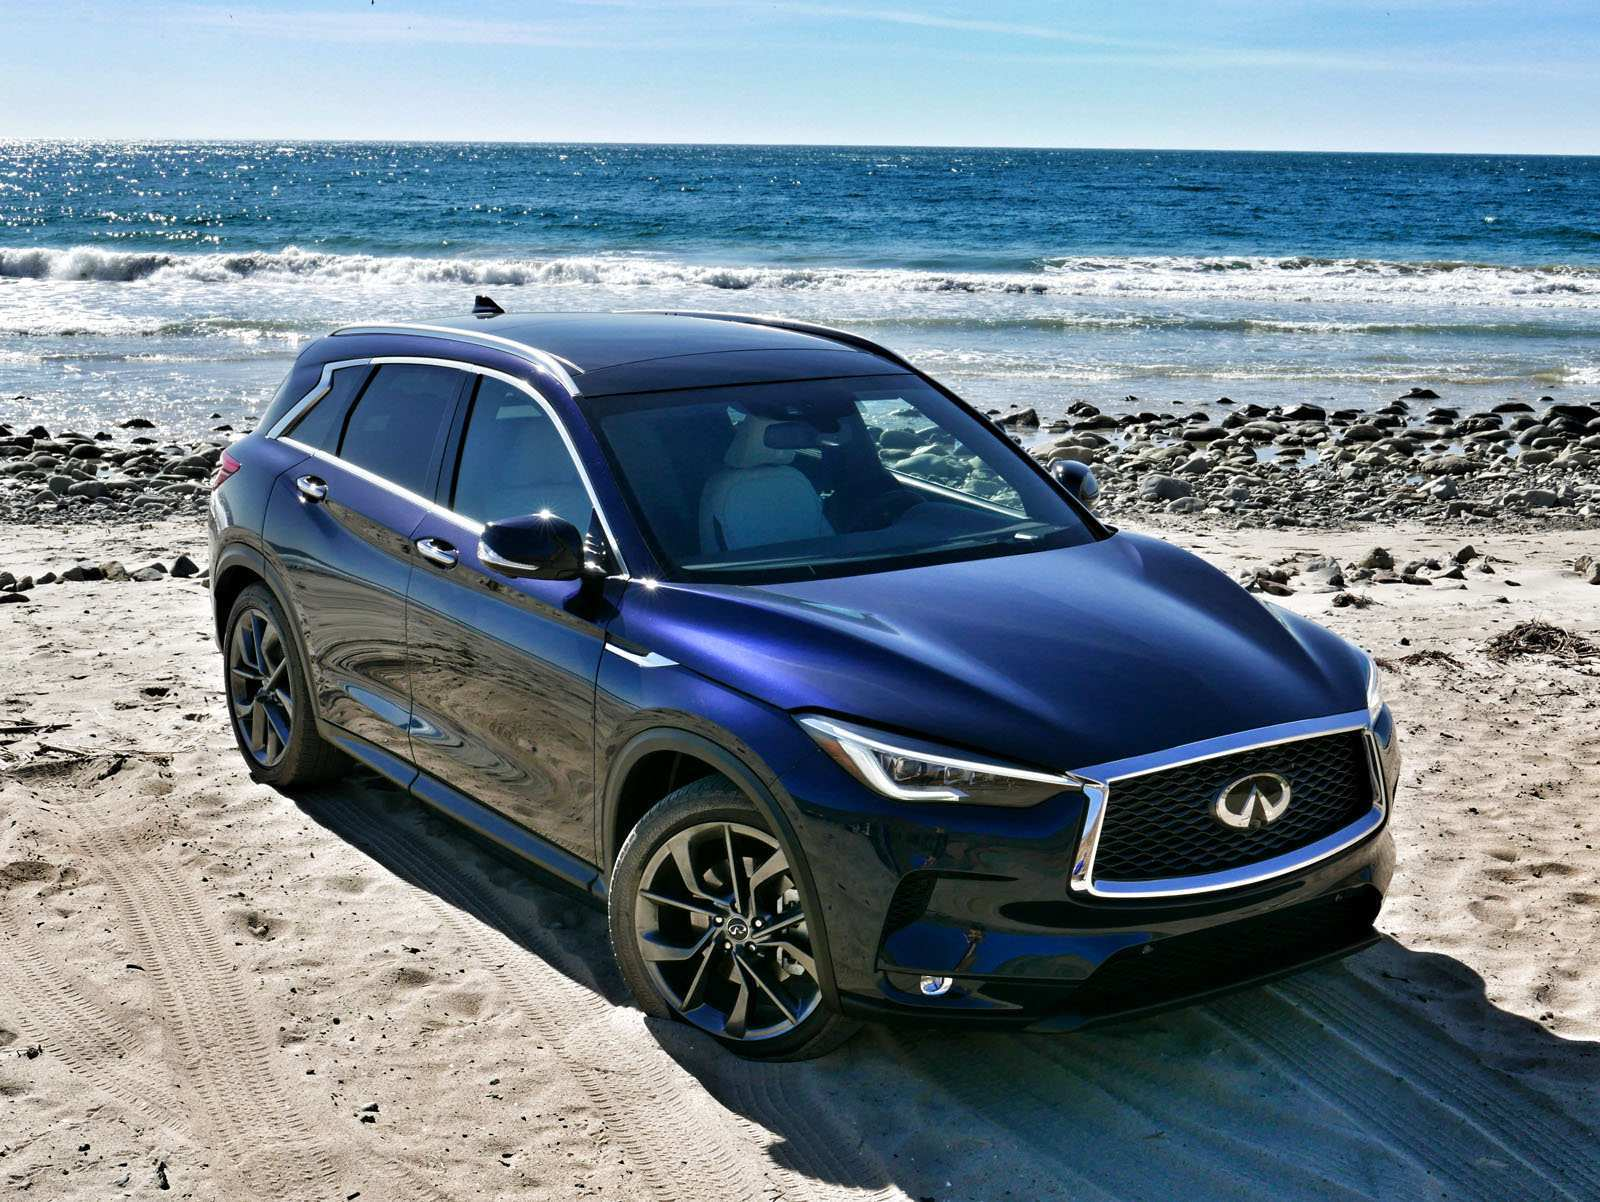 77 New 2019 Infiniti Qx50 Horsepower Picture for 2019 Infiniti Qx50 Horsepower